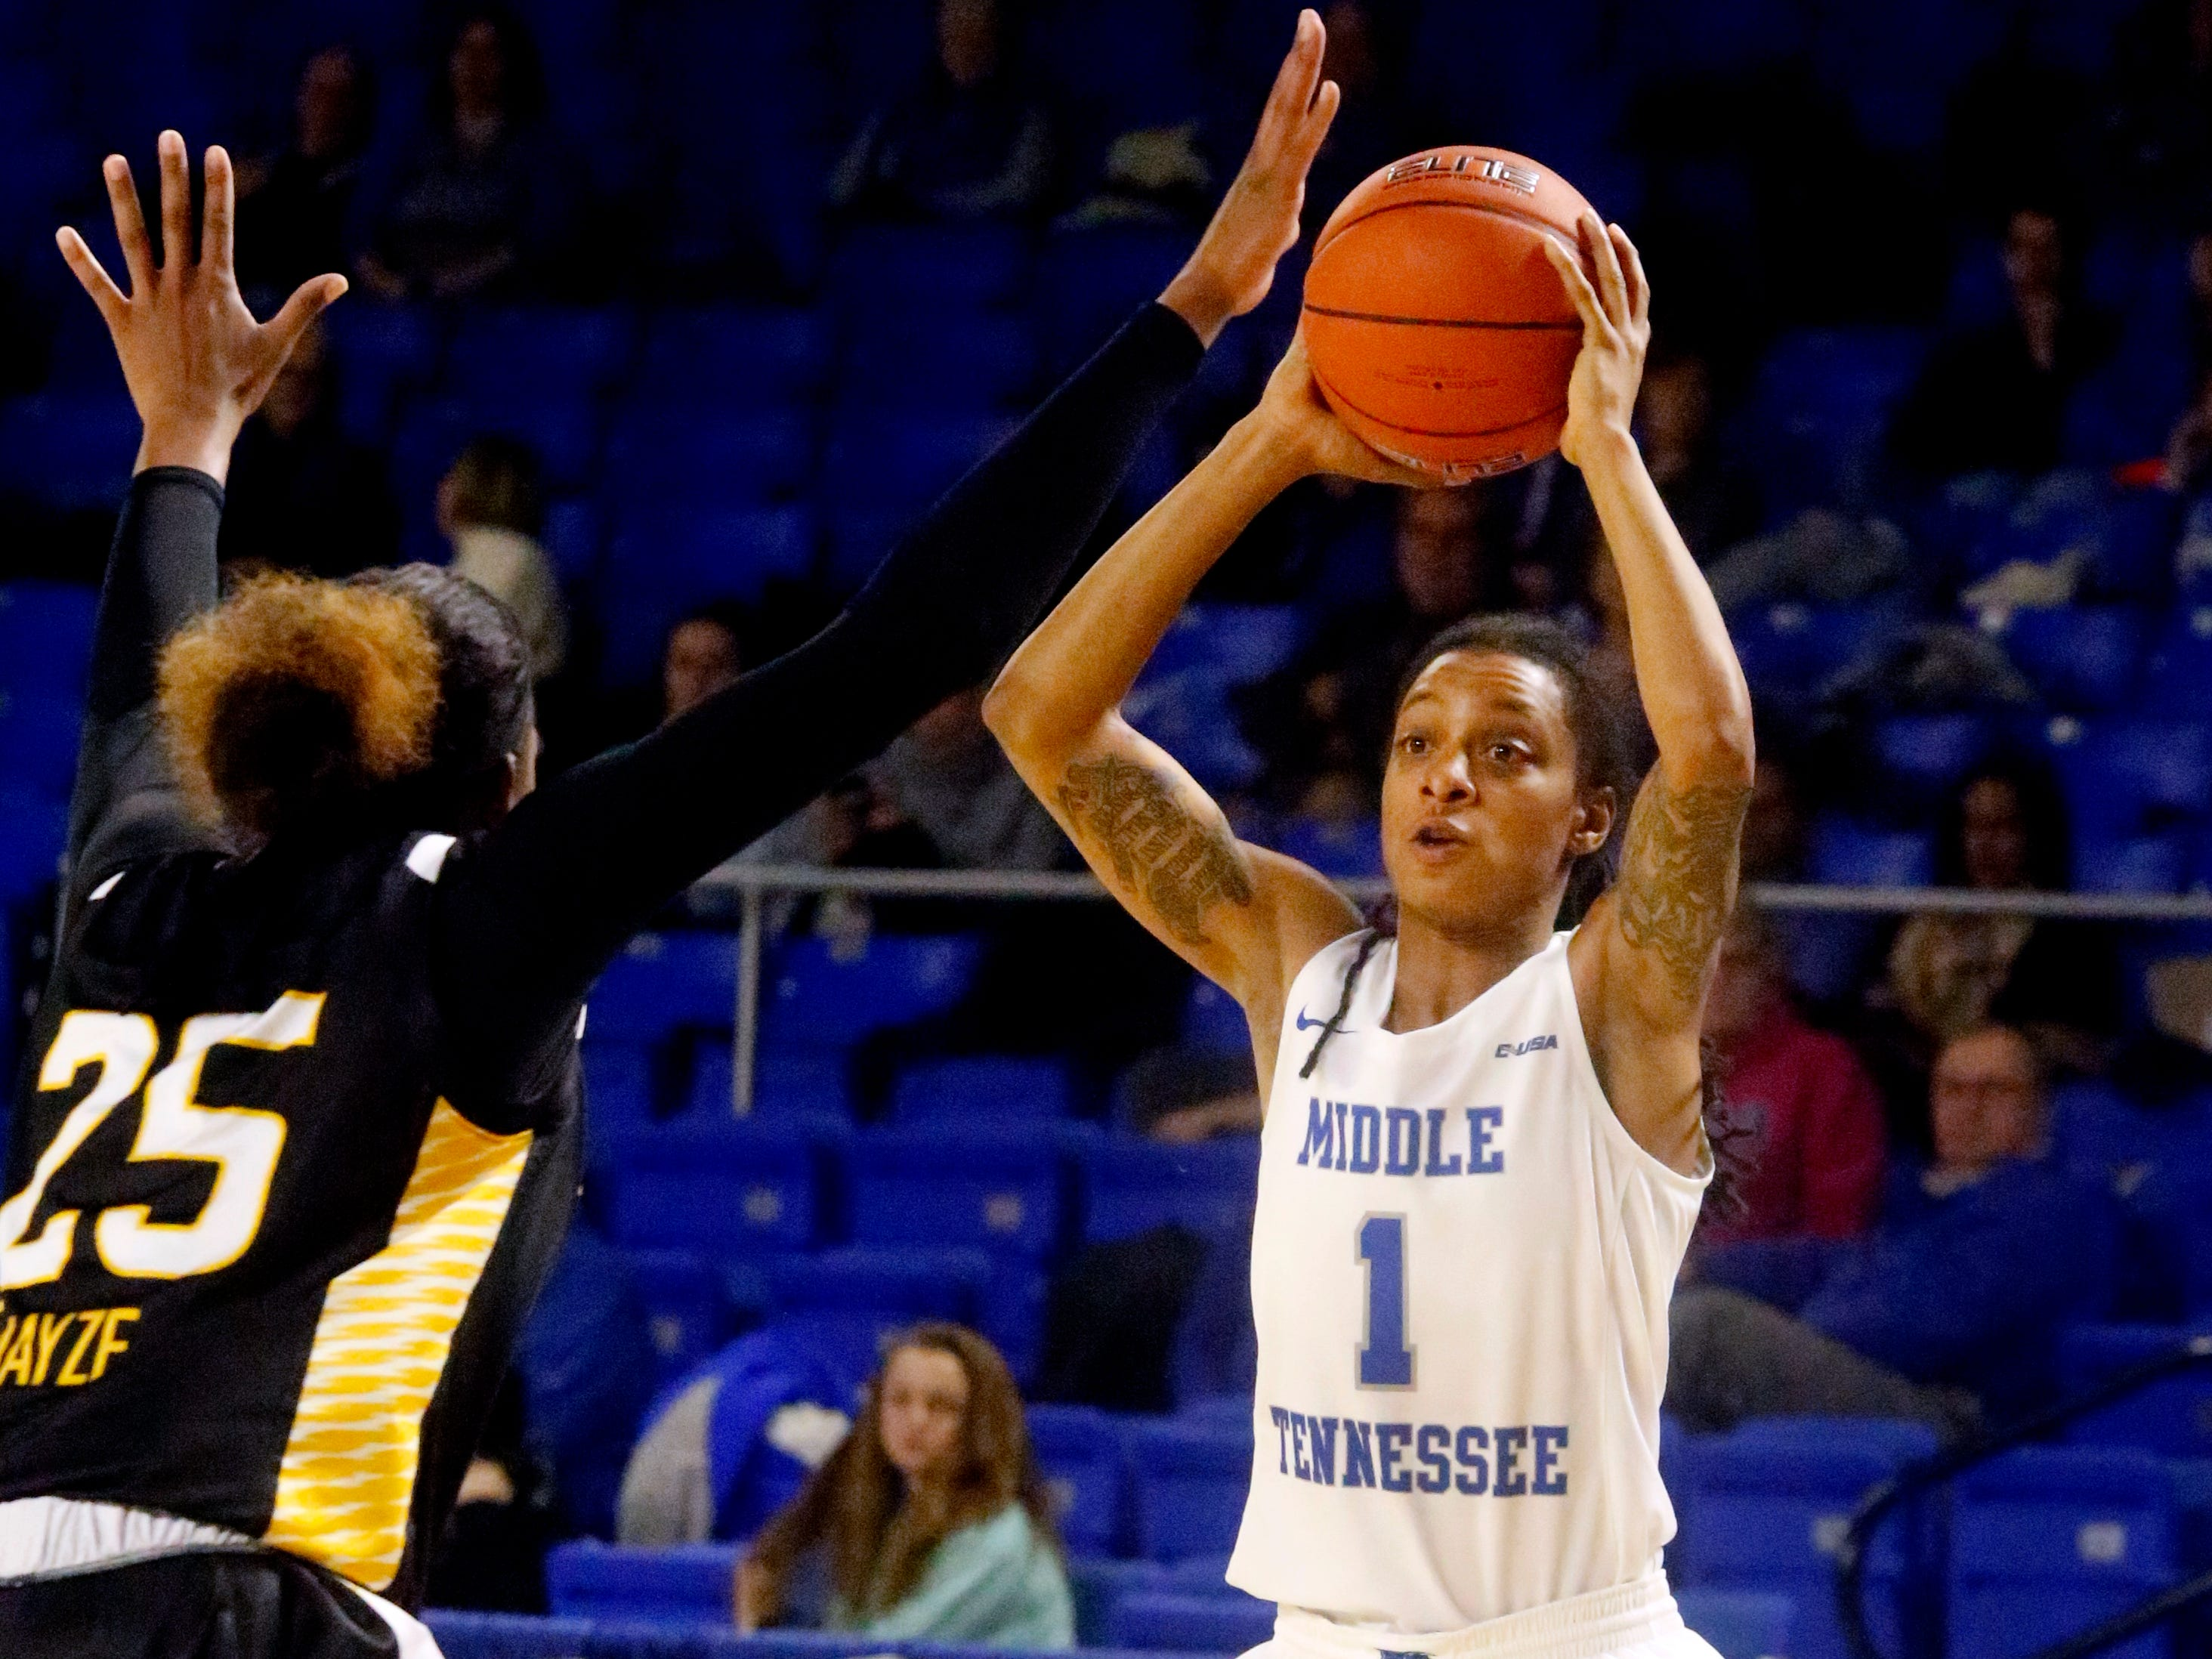 MTSU's guard A'Queen Hayes (1) looks for an open player as Southern Miss' Alarie Mayze (25) guards her on Thursday Jan. 10, 2019.